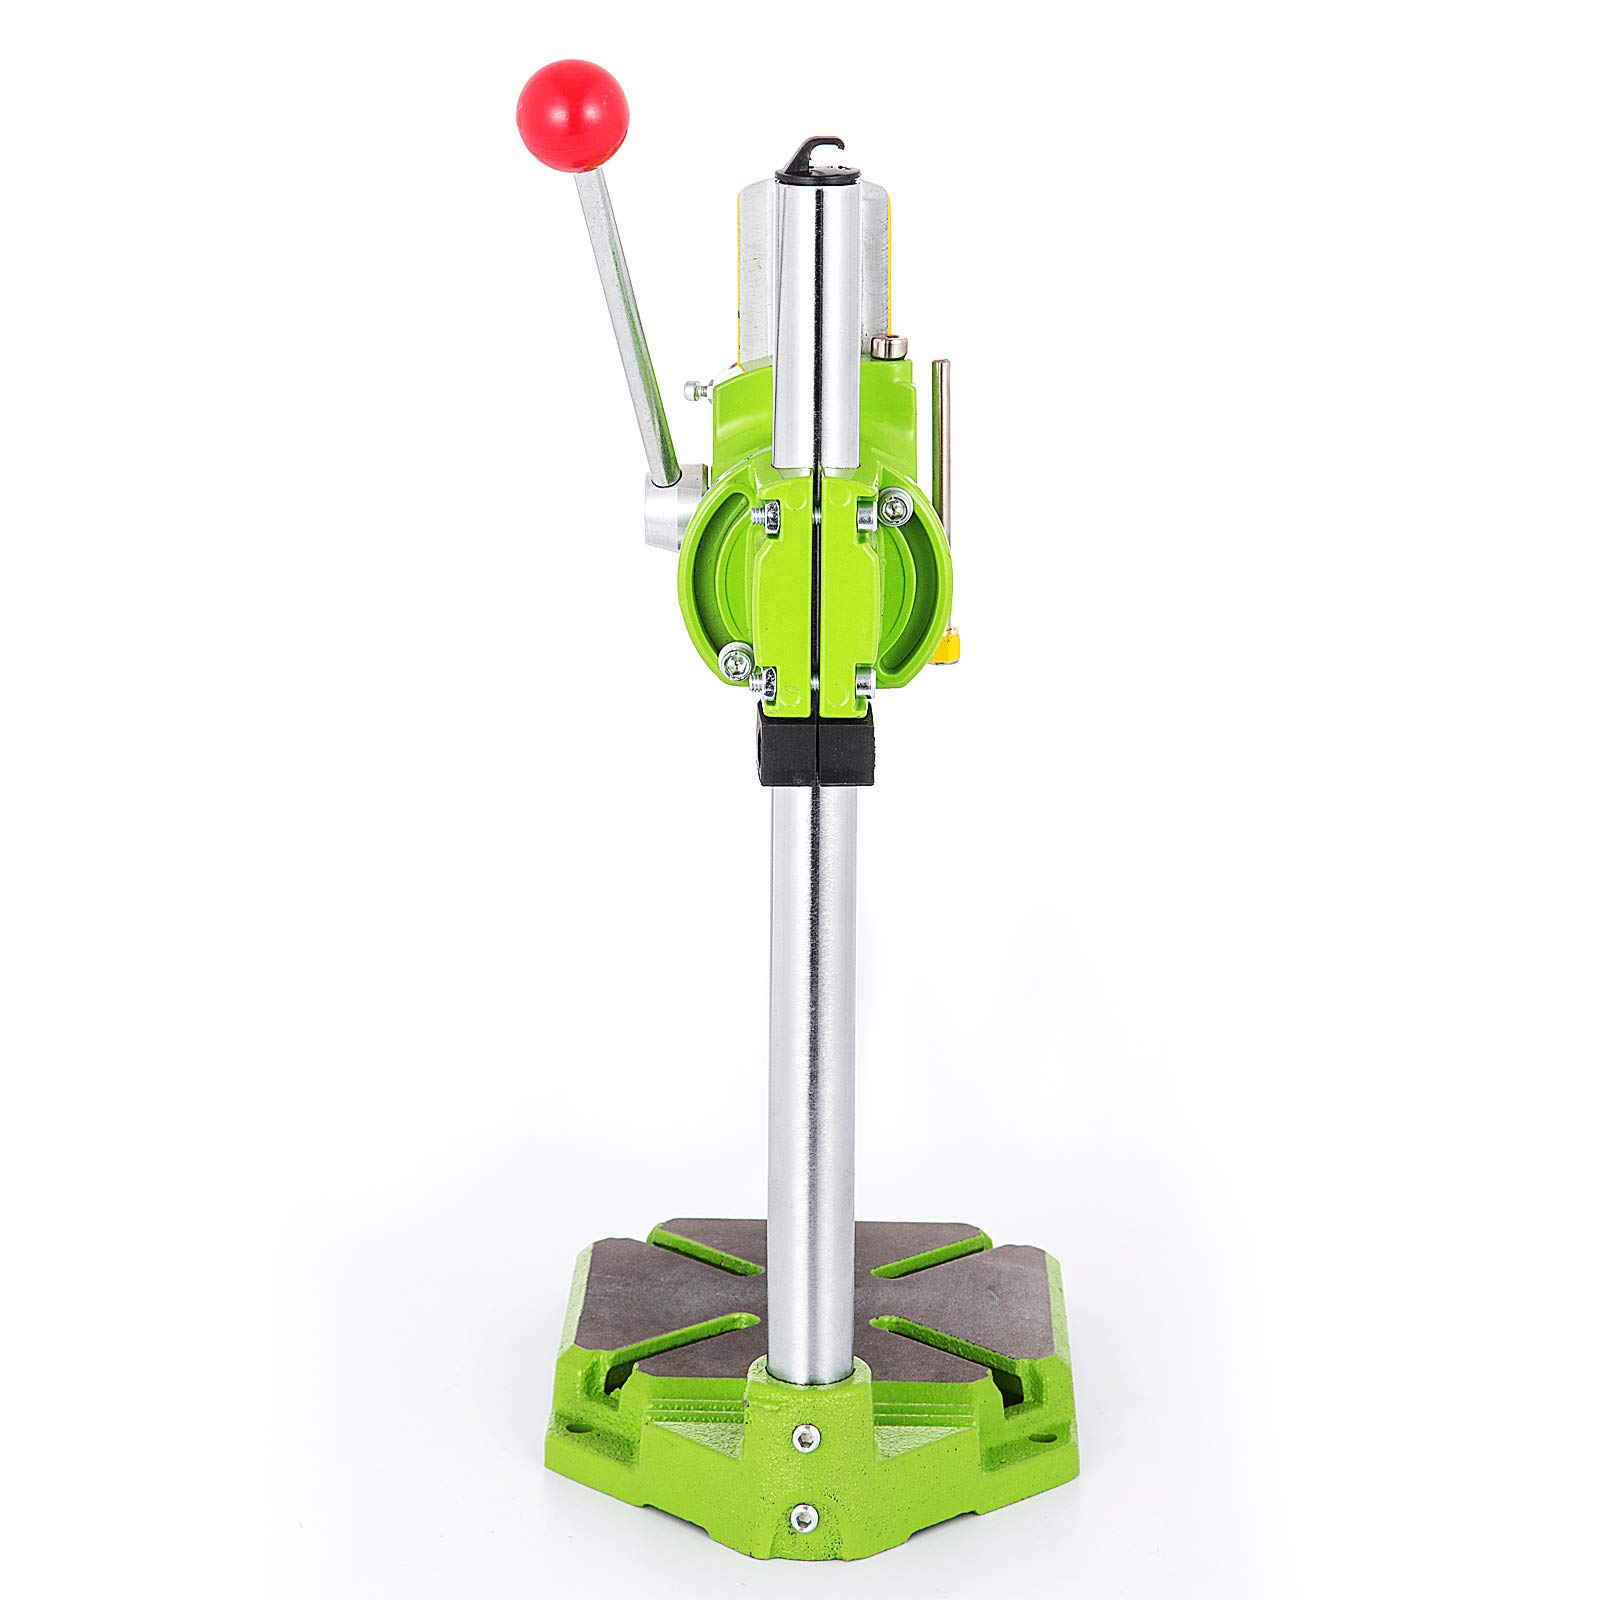 Happybuy Drill Press Stand 90 Degrees Rotary Drill Stand Holder 60mm Work Travel Repair Tool Clamp by Happybuy (Image #4)